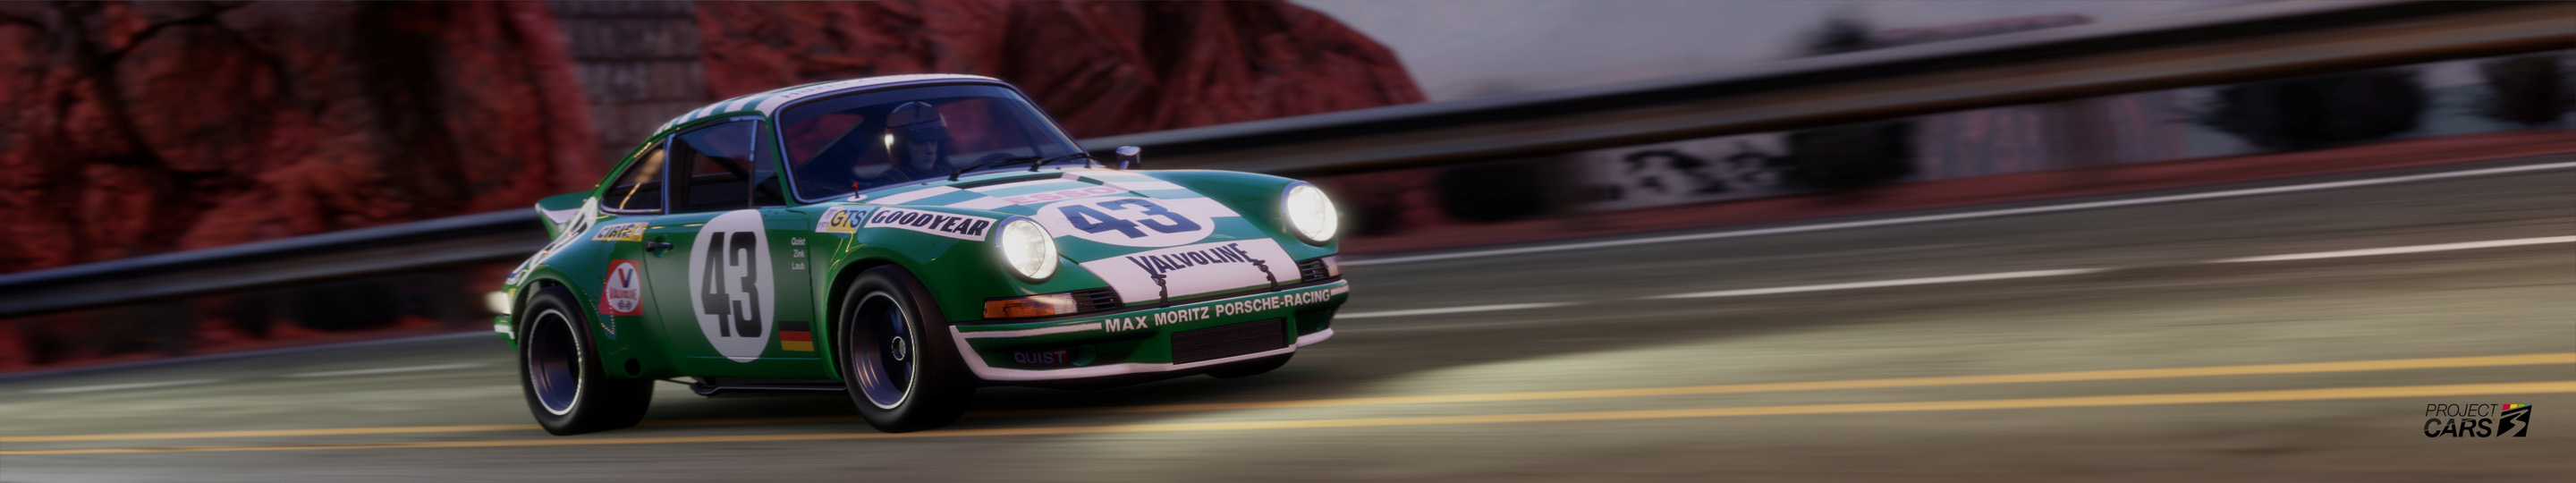 0 PROJECT CARS 3 MONUMENT CANYON with PIR RANGE CARS copy.jpg